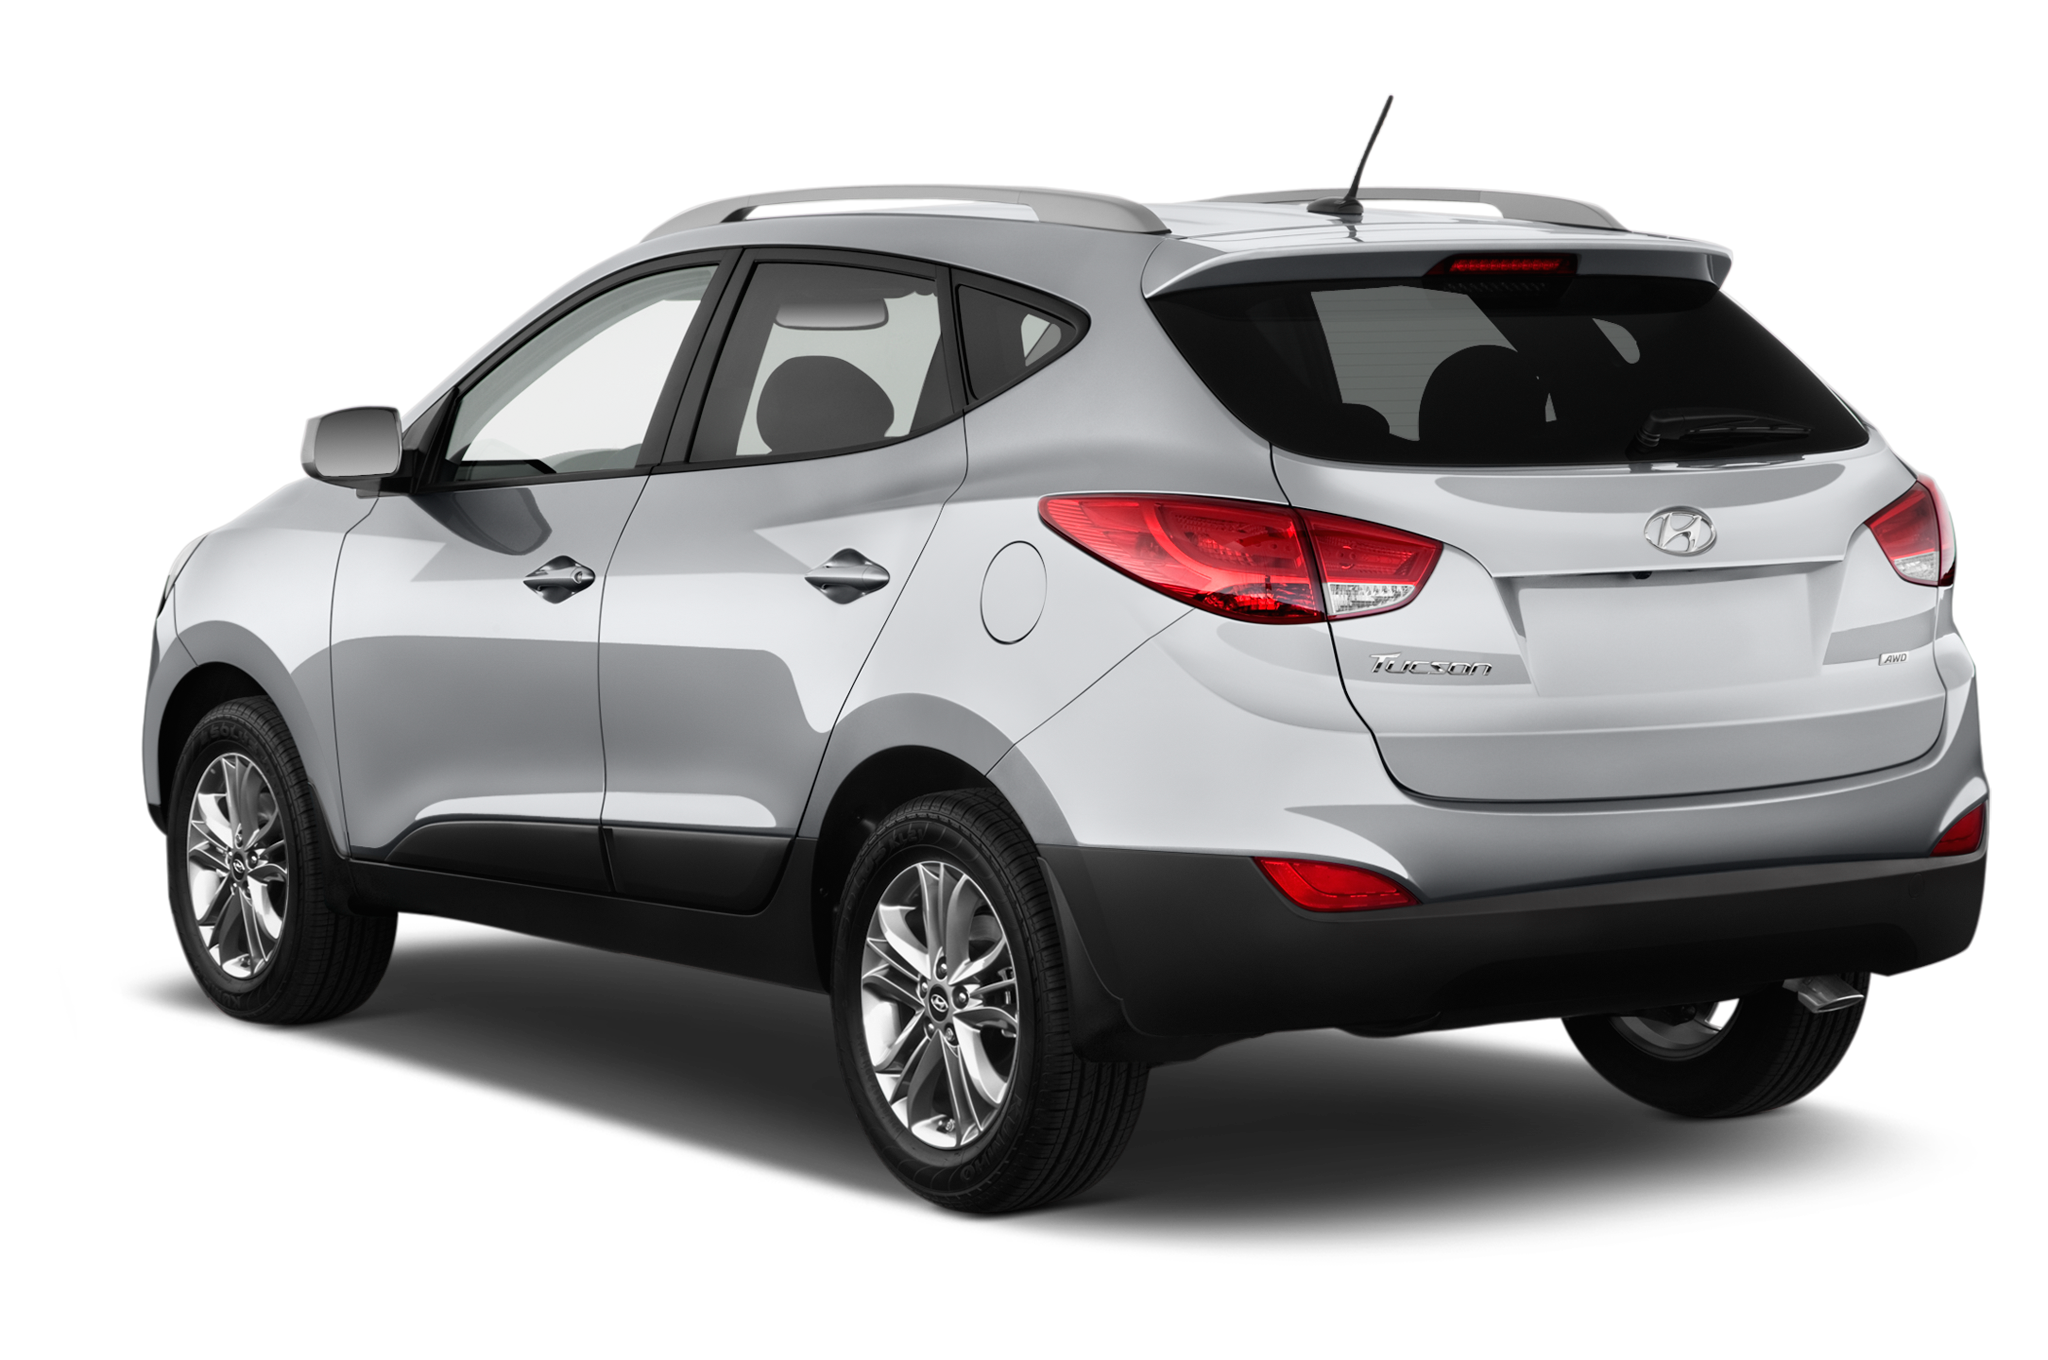 car en fwd full tucson technical the motoring specifications price tv engine guide hyundai